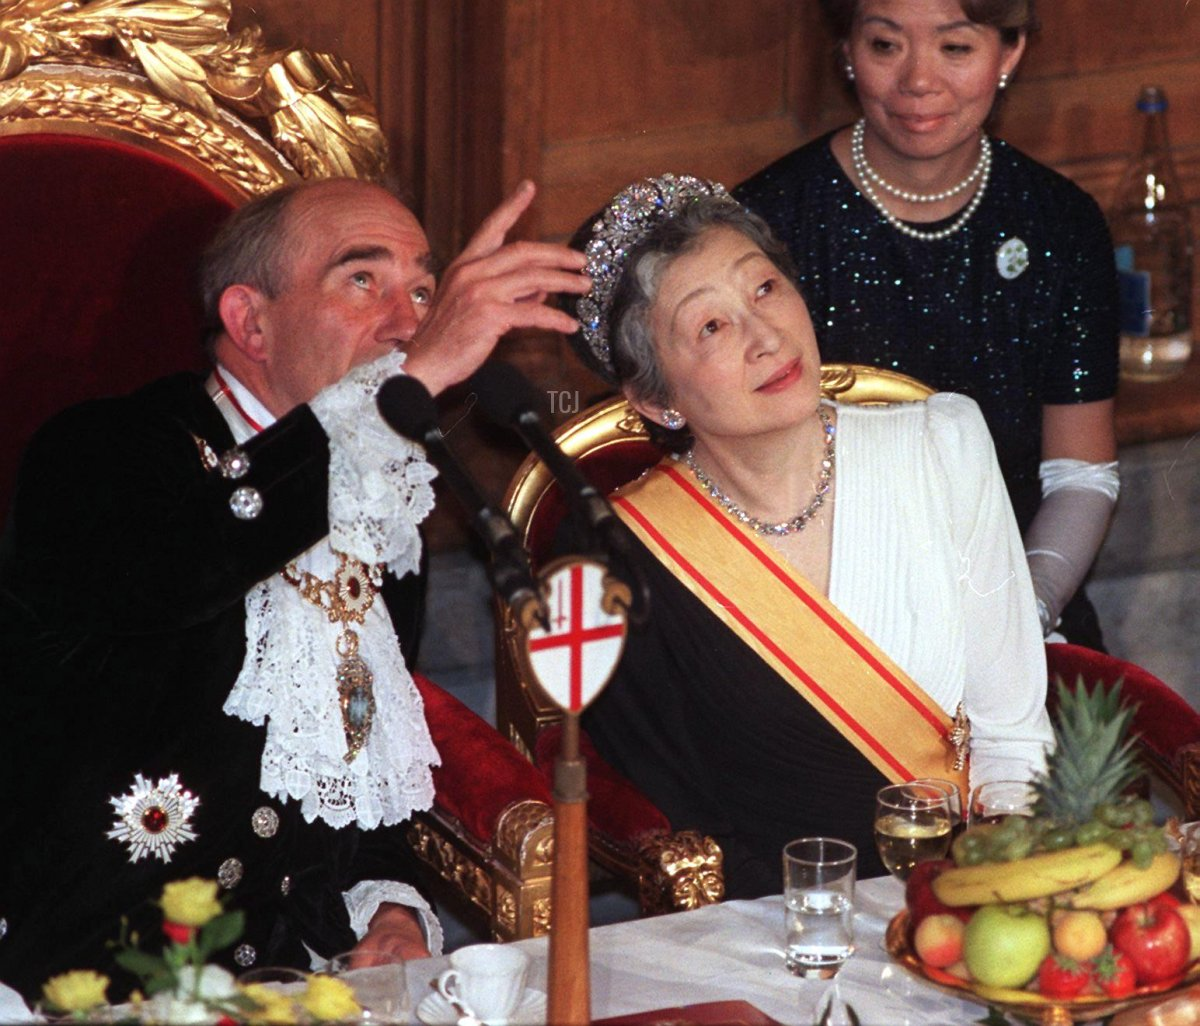 The Lord Mayor of London points out architectural features of the Guildhall to Empress Michiko of Japan 27 May 1998, during a banquet organised in honour of Japanese Emperor Akihito and the Empresses visit to Britain